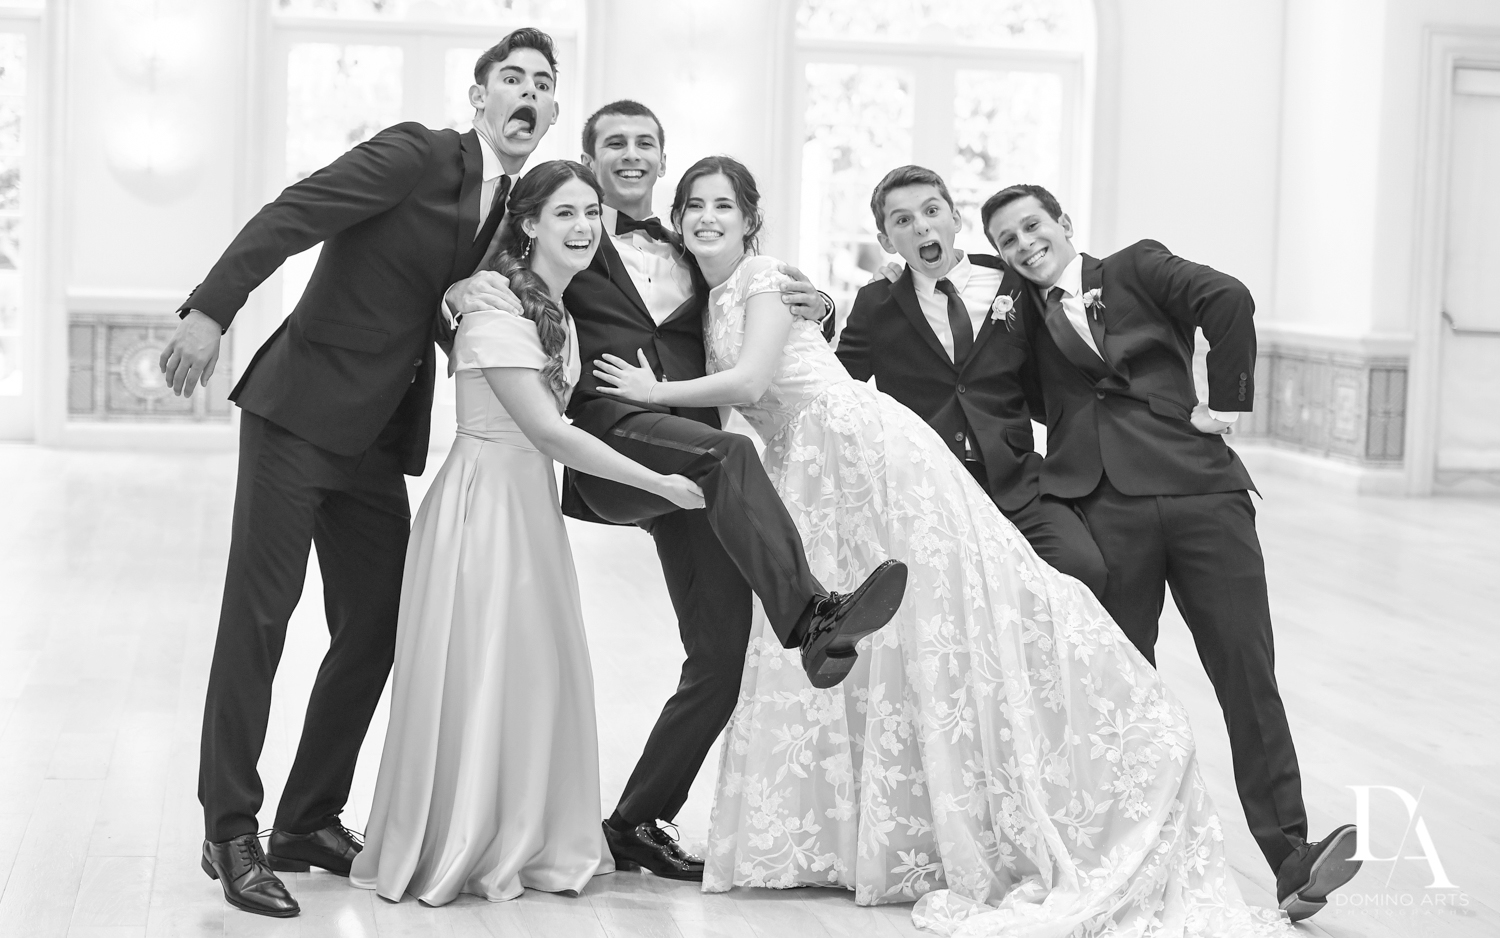 B&W family photos at Luxury Summer Wedding at The Colony Hotel Palm Beach by Domino Arts Photography